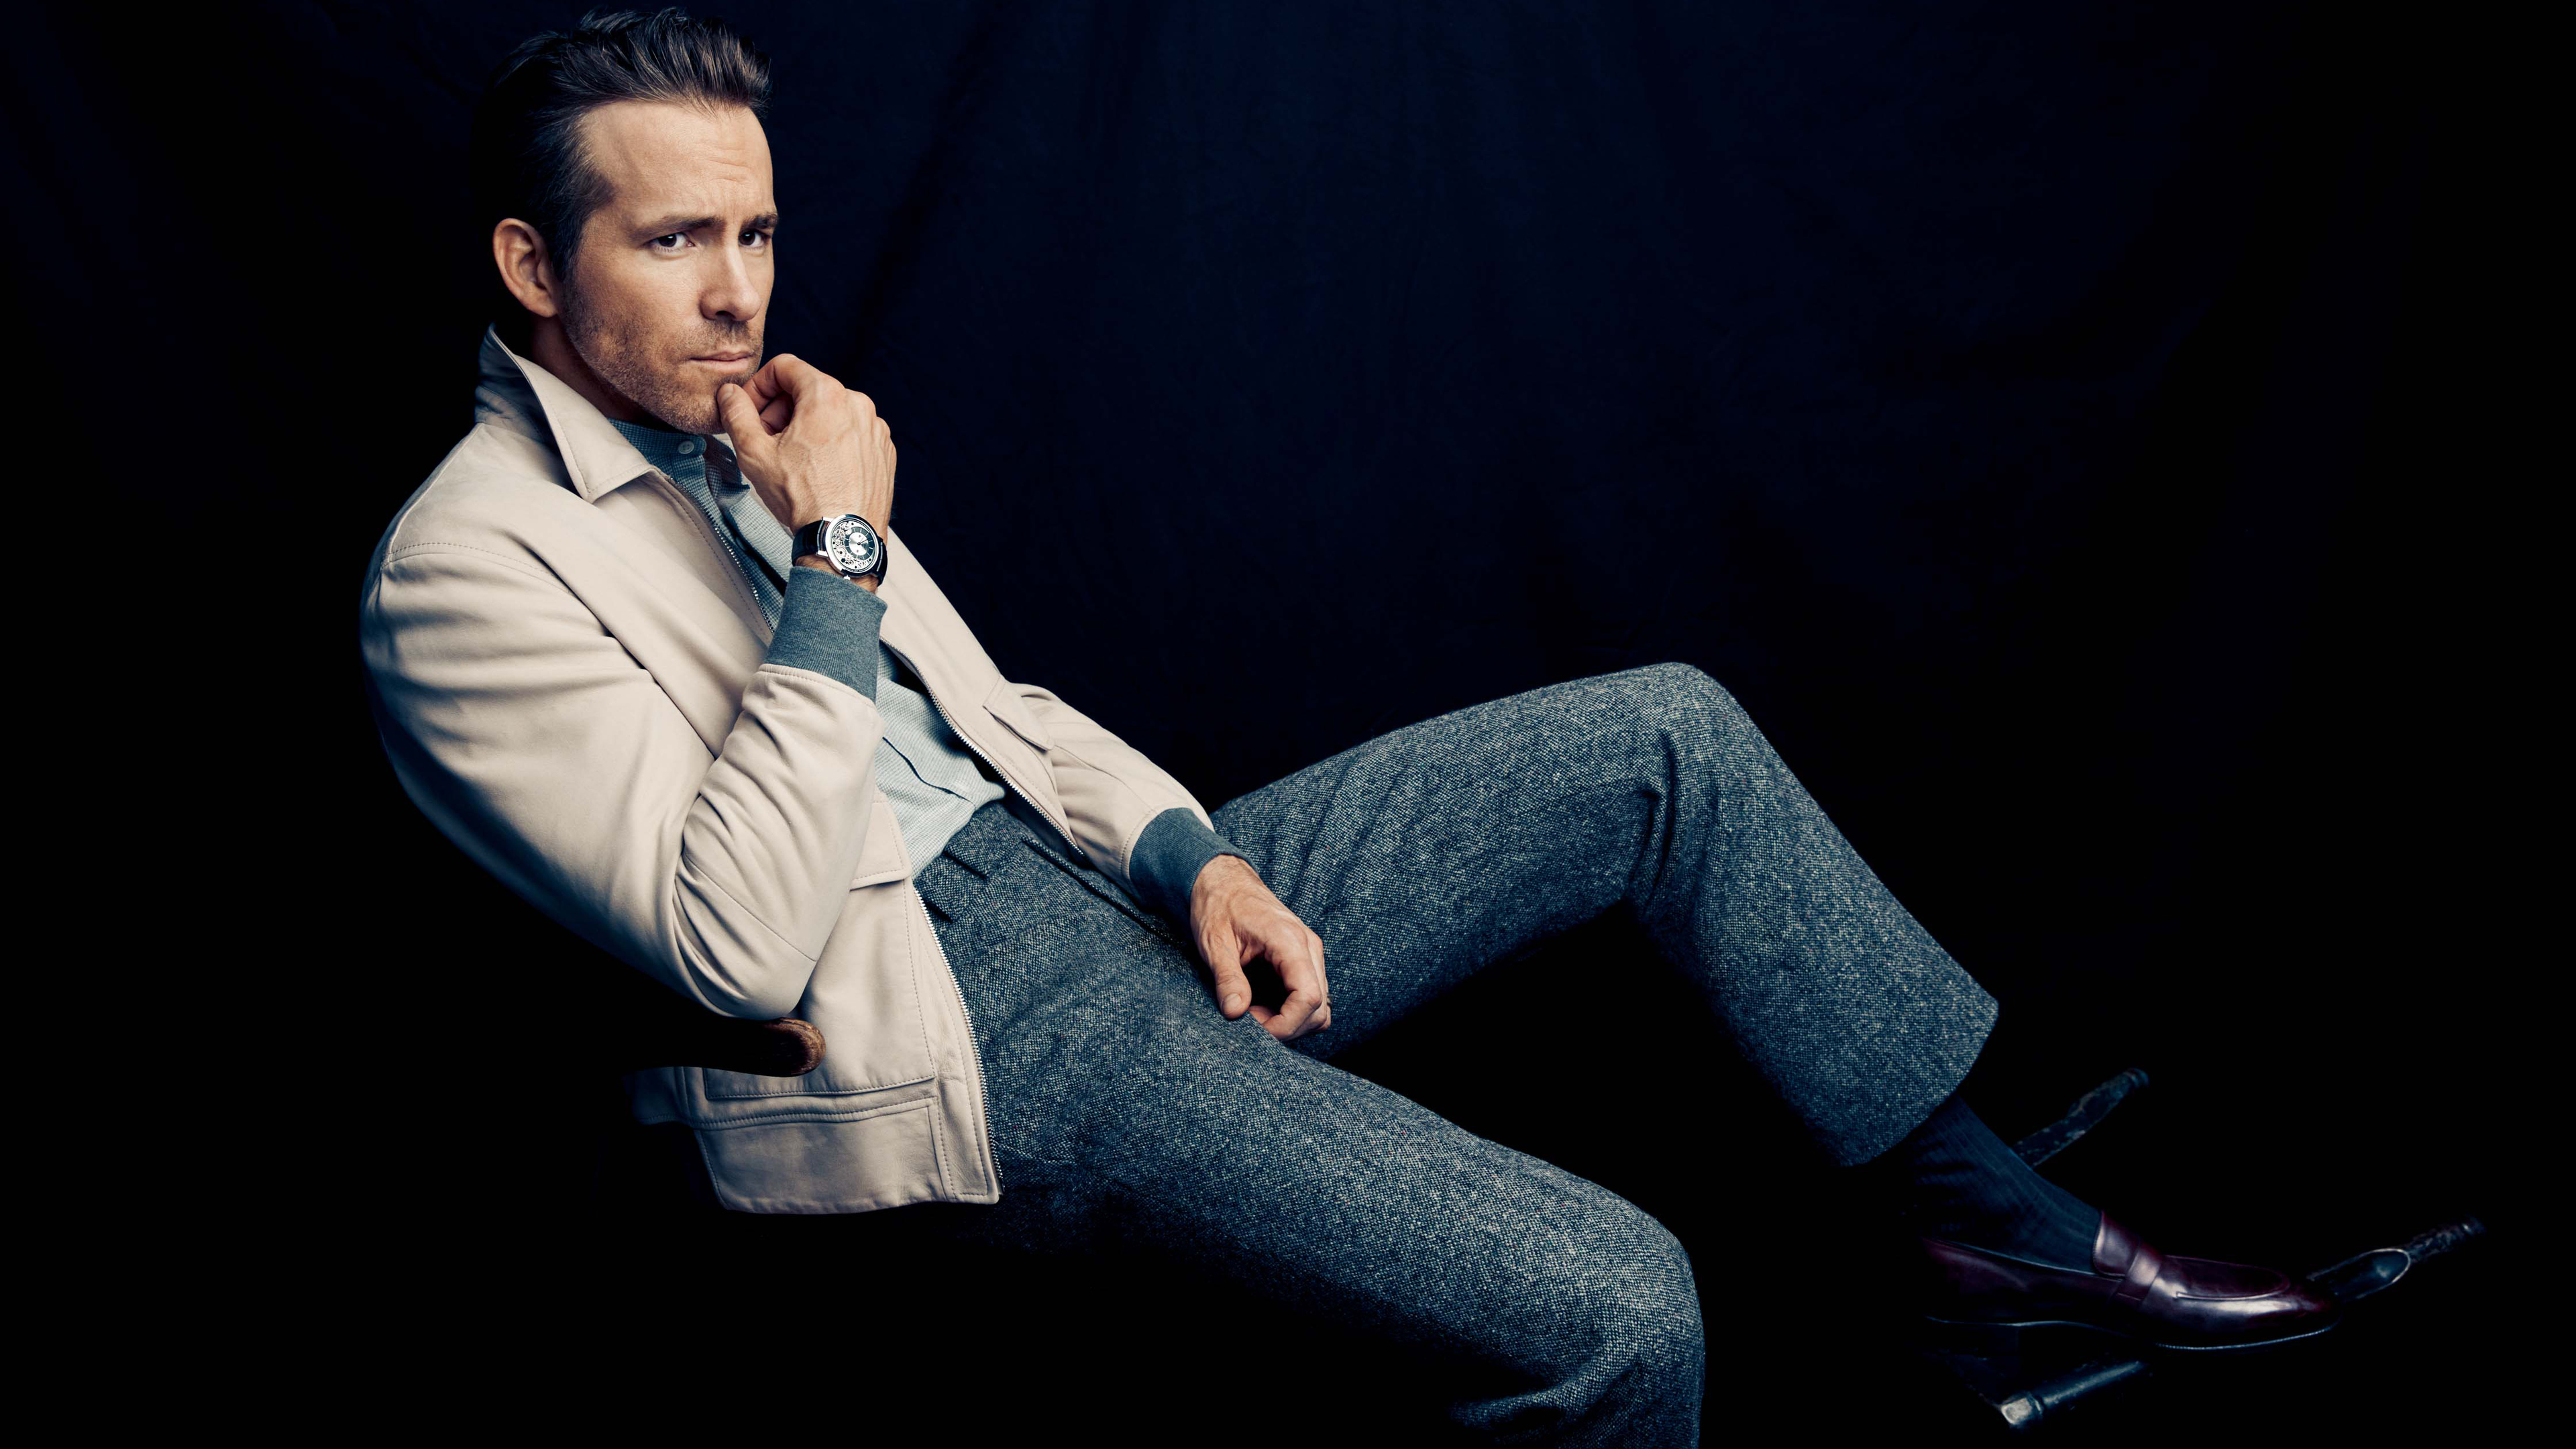 ryan reynolds 4k 1542236257 - Ryan Reynolds 4k - ryan reynolds wallpapers, male celebrities wallpapers, hd-wallpapers, boys wallpapers, 4k-wallpapers